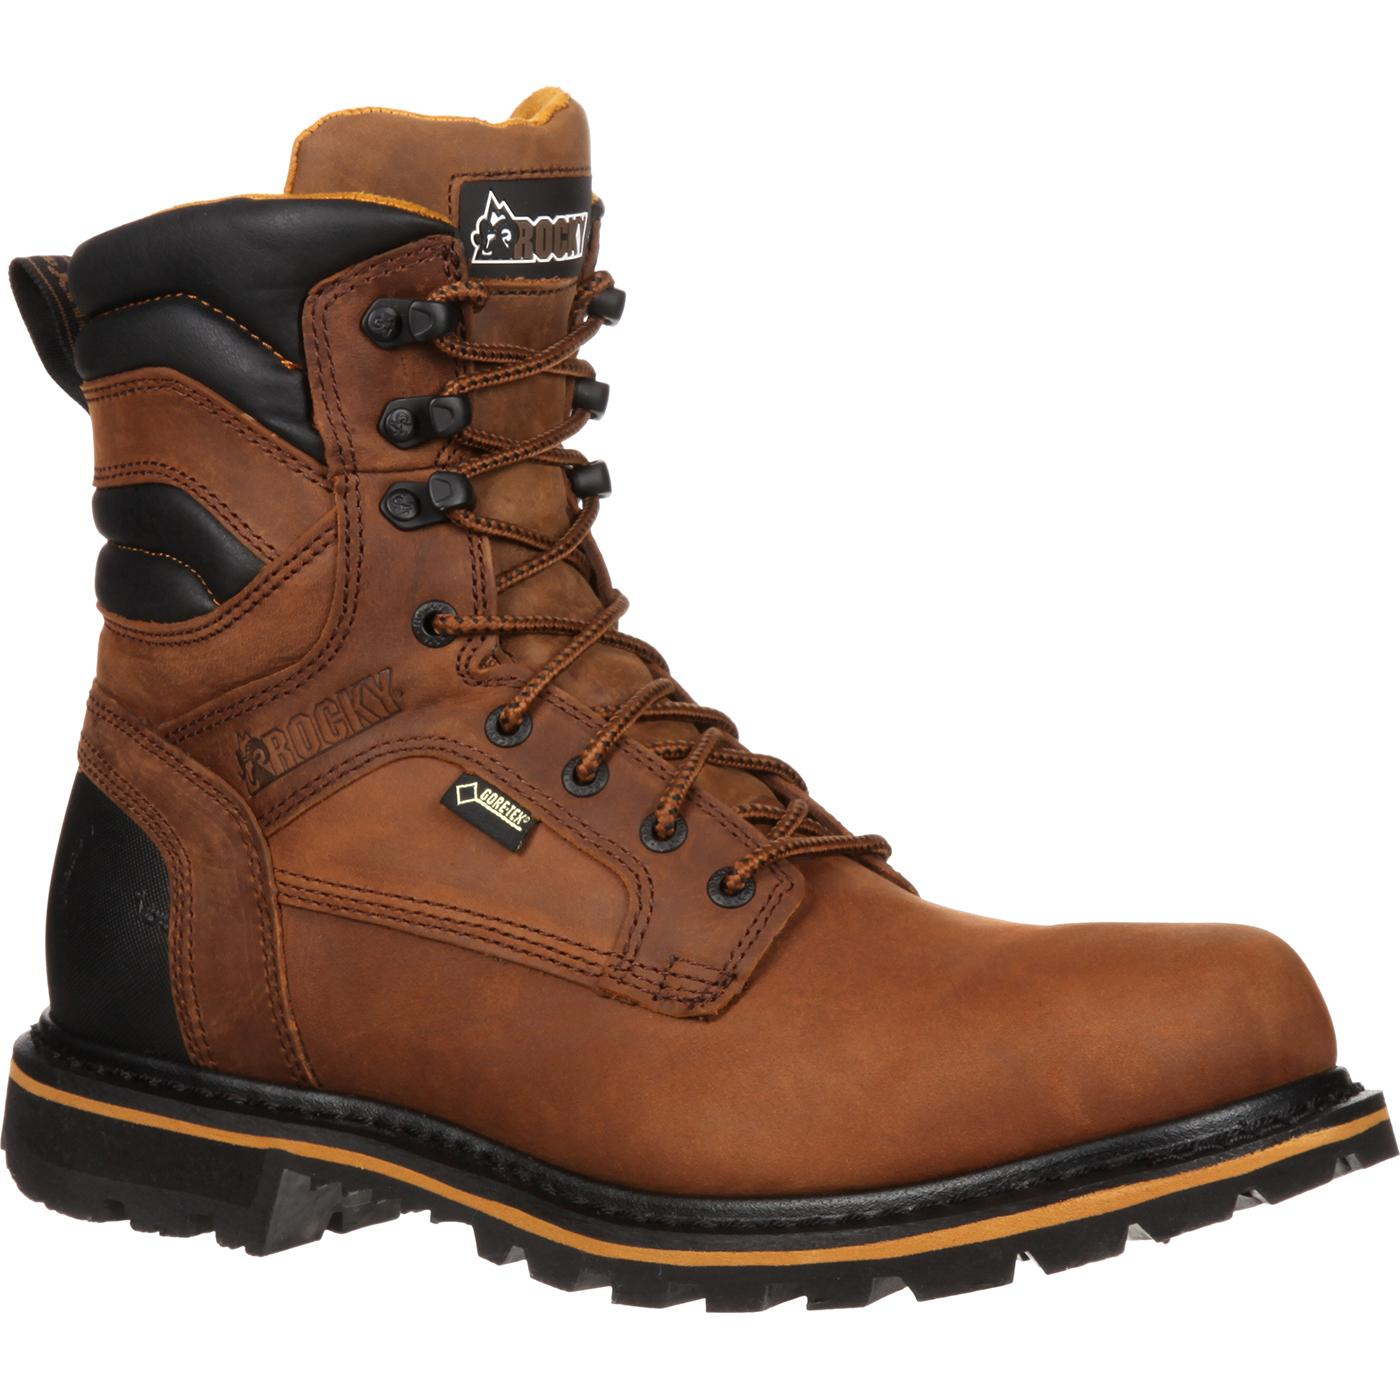 GORE-TEX Composite Toe Work Boot, Rocky Governor #RKYK004